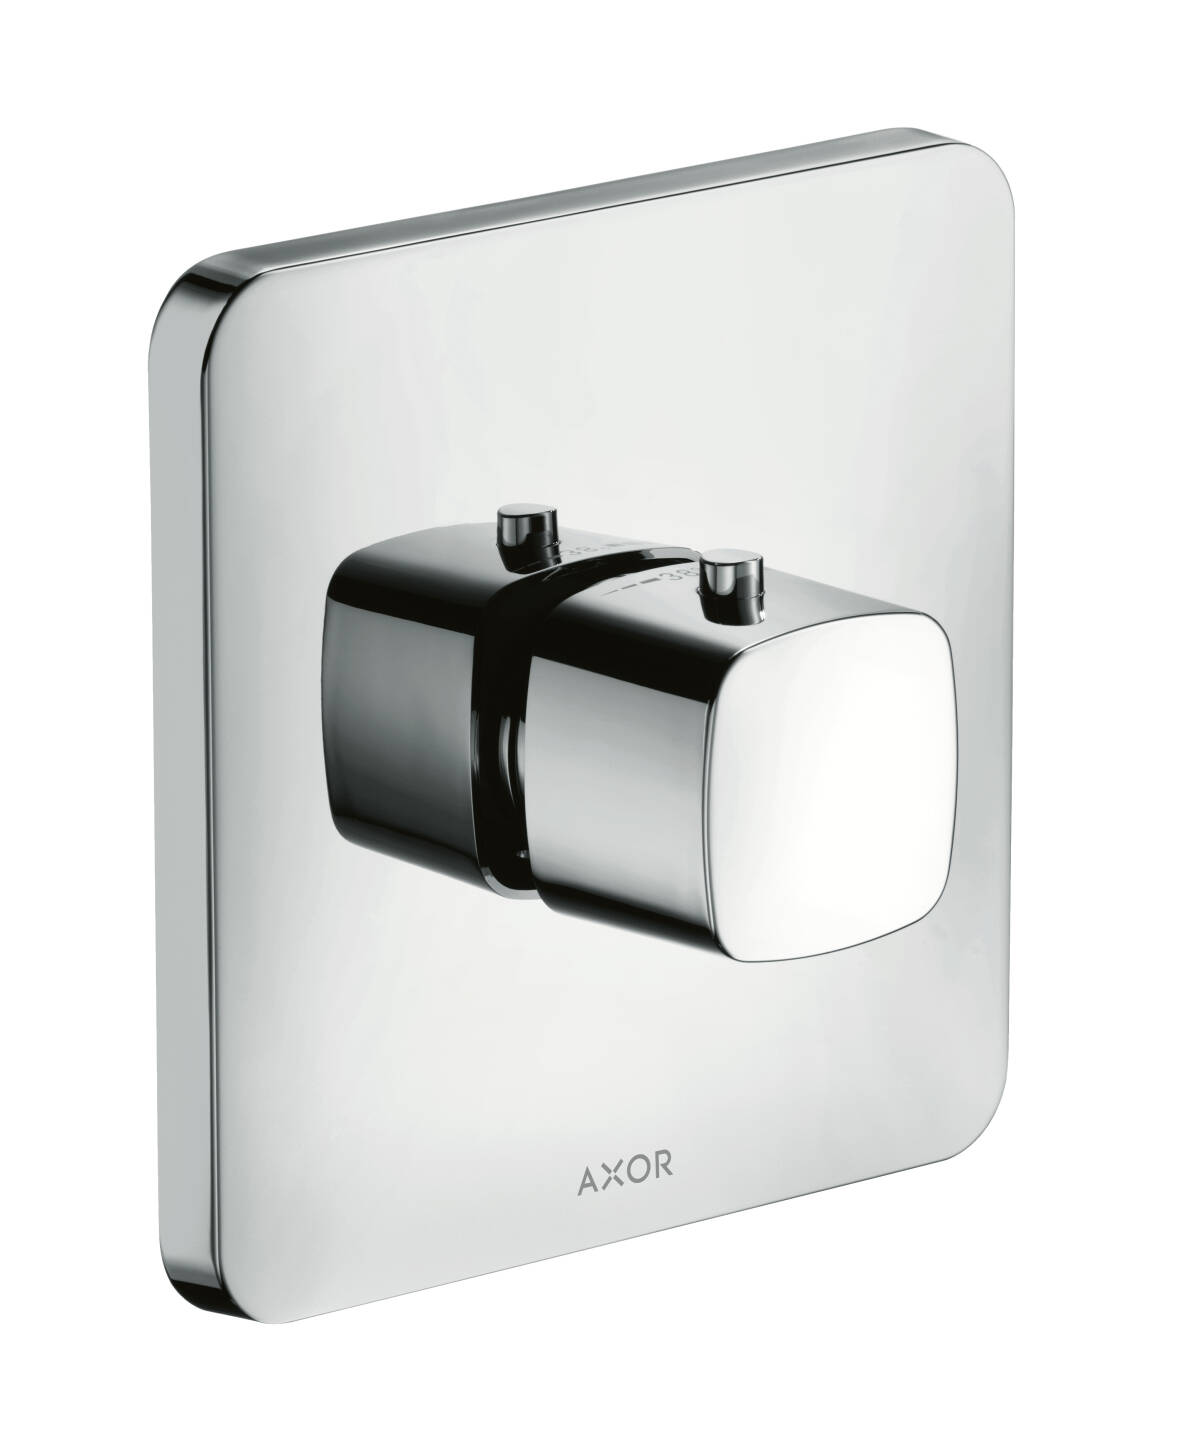 Thermostatic mixer highflow 59 l/min for concealed installation, Polished Gold Optic, 11731990